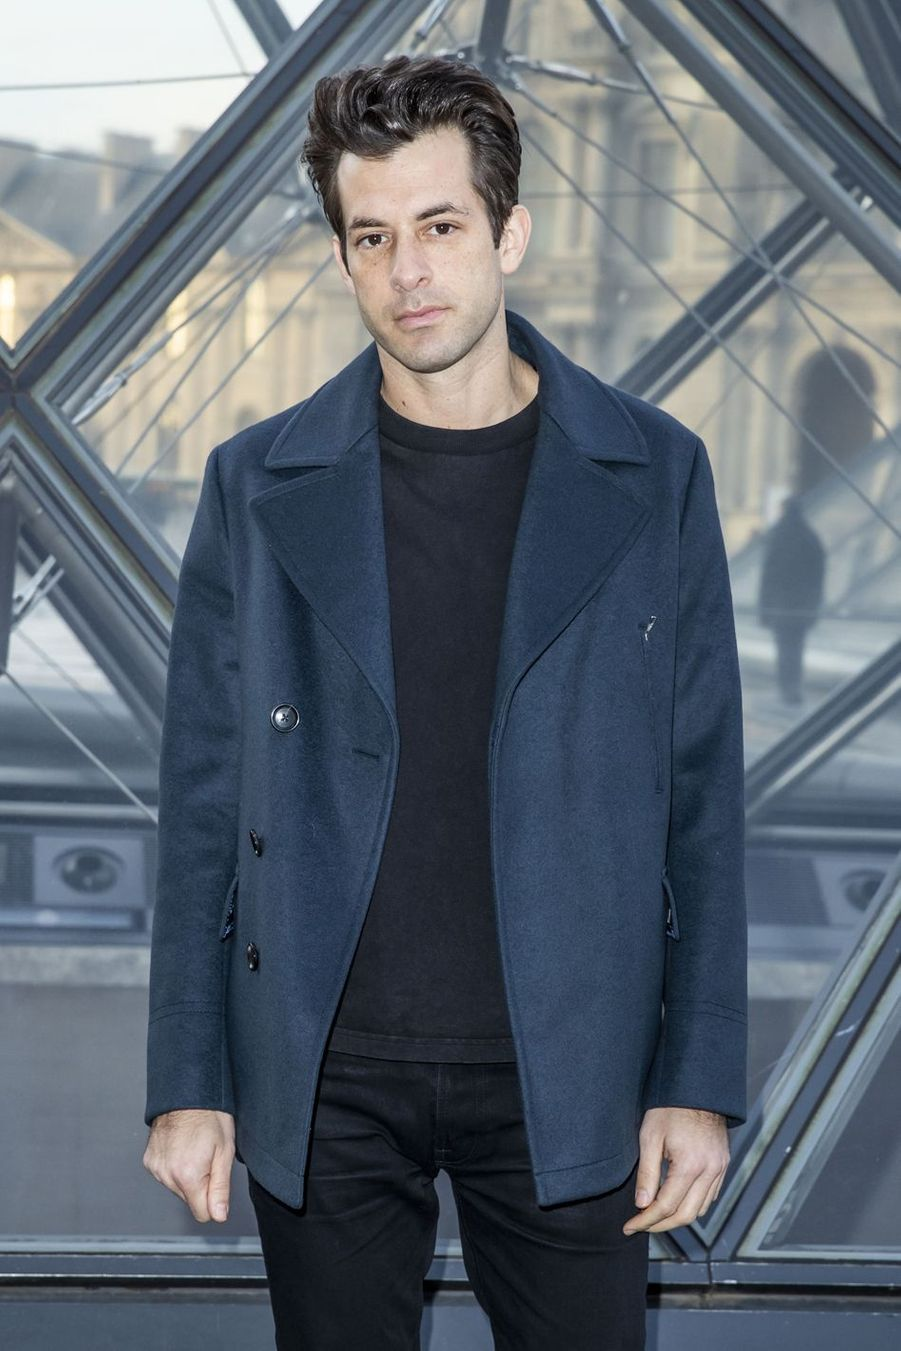 Mark Ronson au défilé Louis Vuitton à Paris, le 5 mars 2019